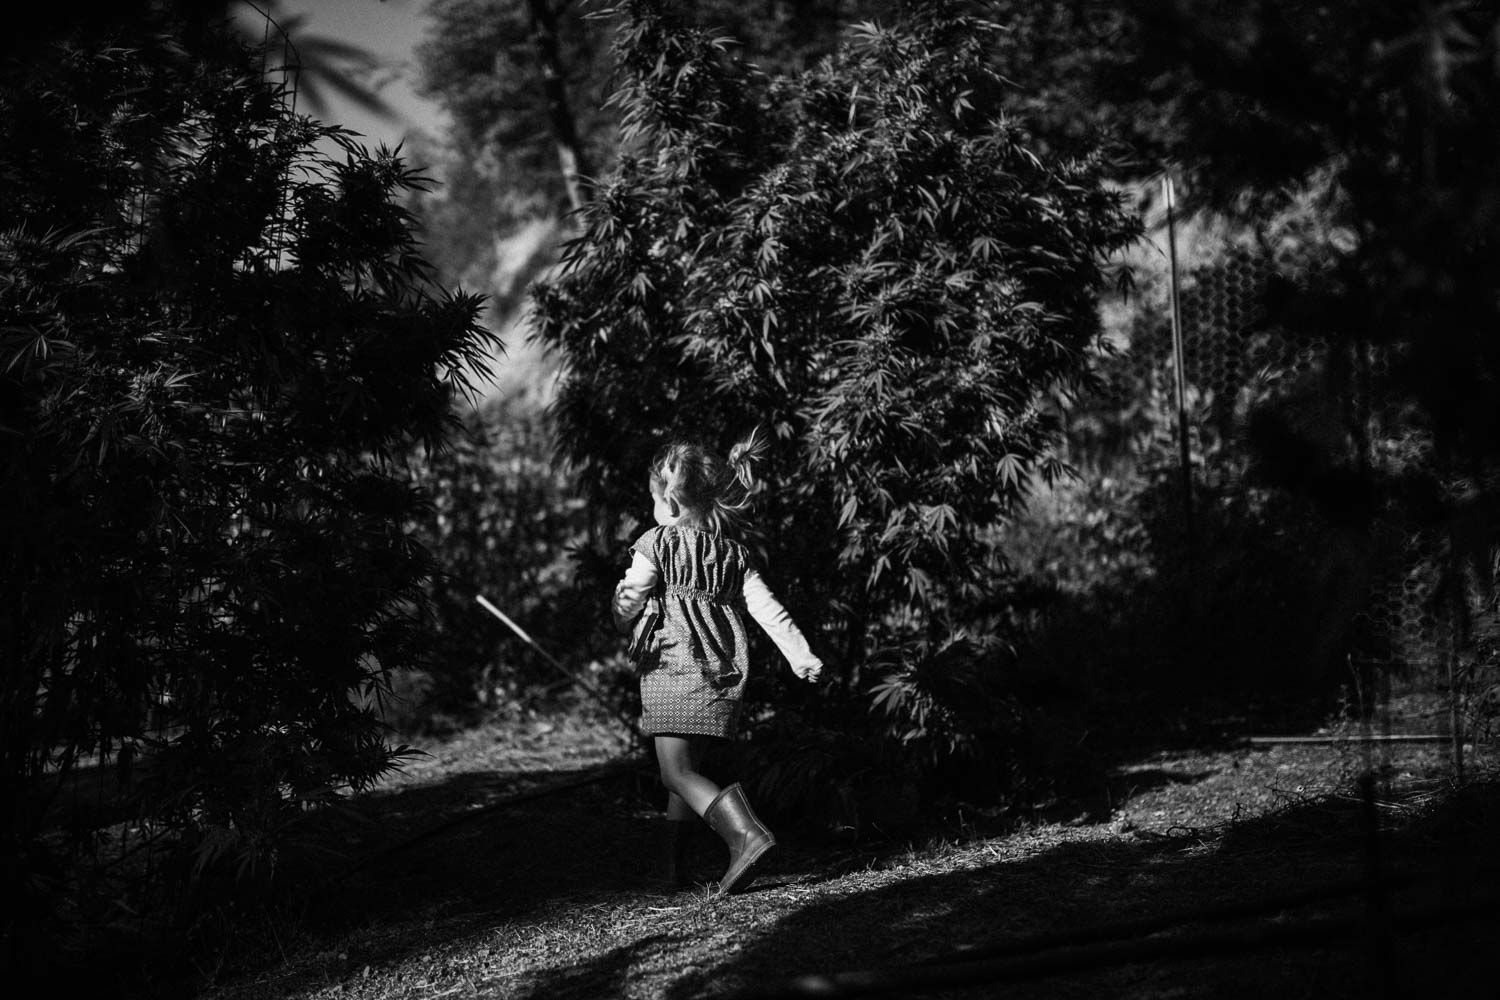 candid-black-and-white-photo-of-little-girl-running-through-weed-farm-in-benbow-california